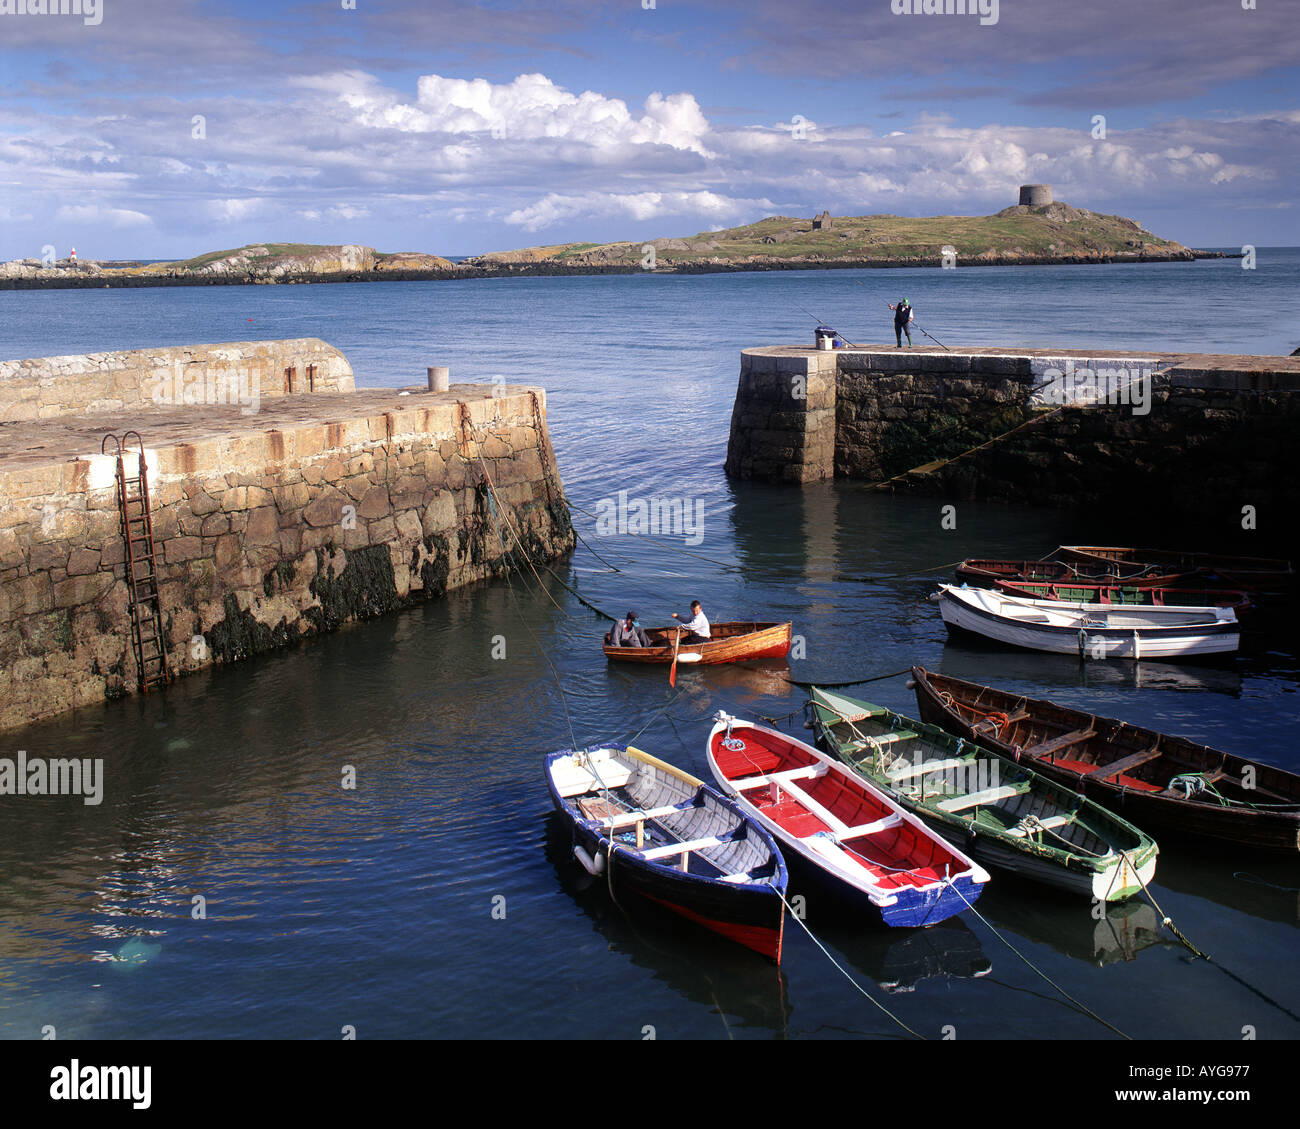 IE - CO. DUBLIN: Coliemore Harbour at Dalkey - Stock Image